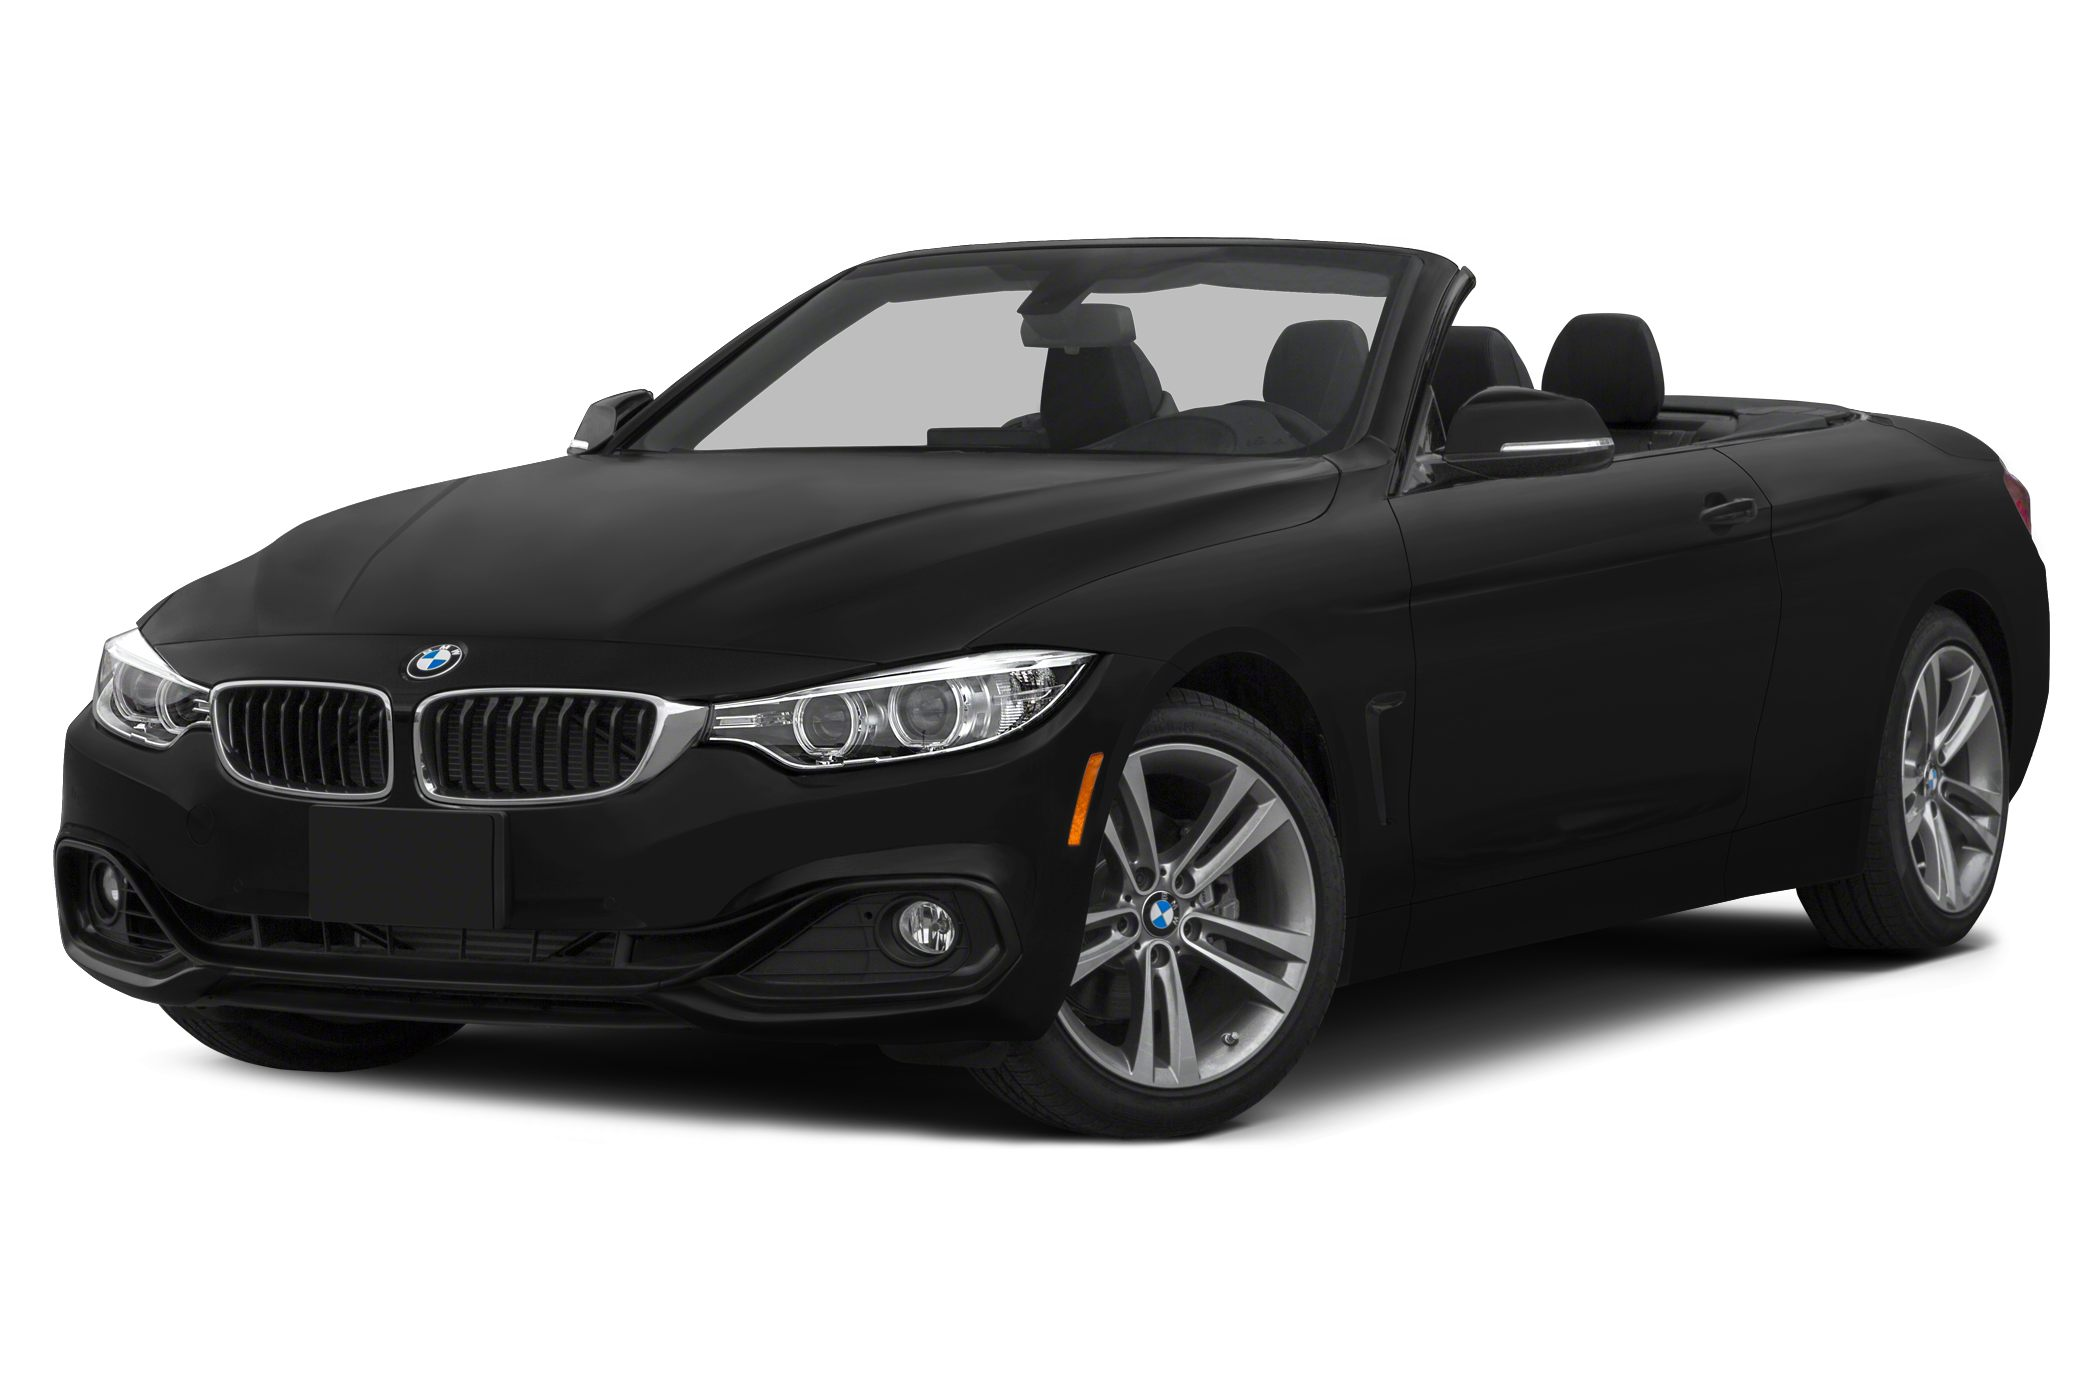 2015 BMW 428 I Convertible for sale in Egg Harbor Township for $62,625 with 8 miles.